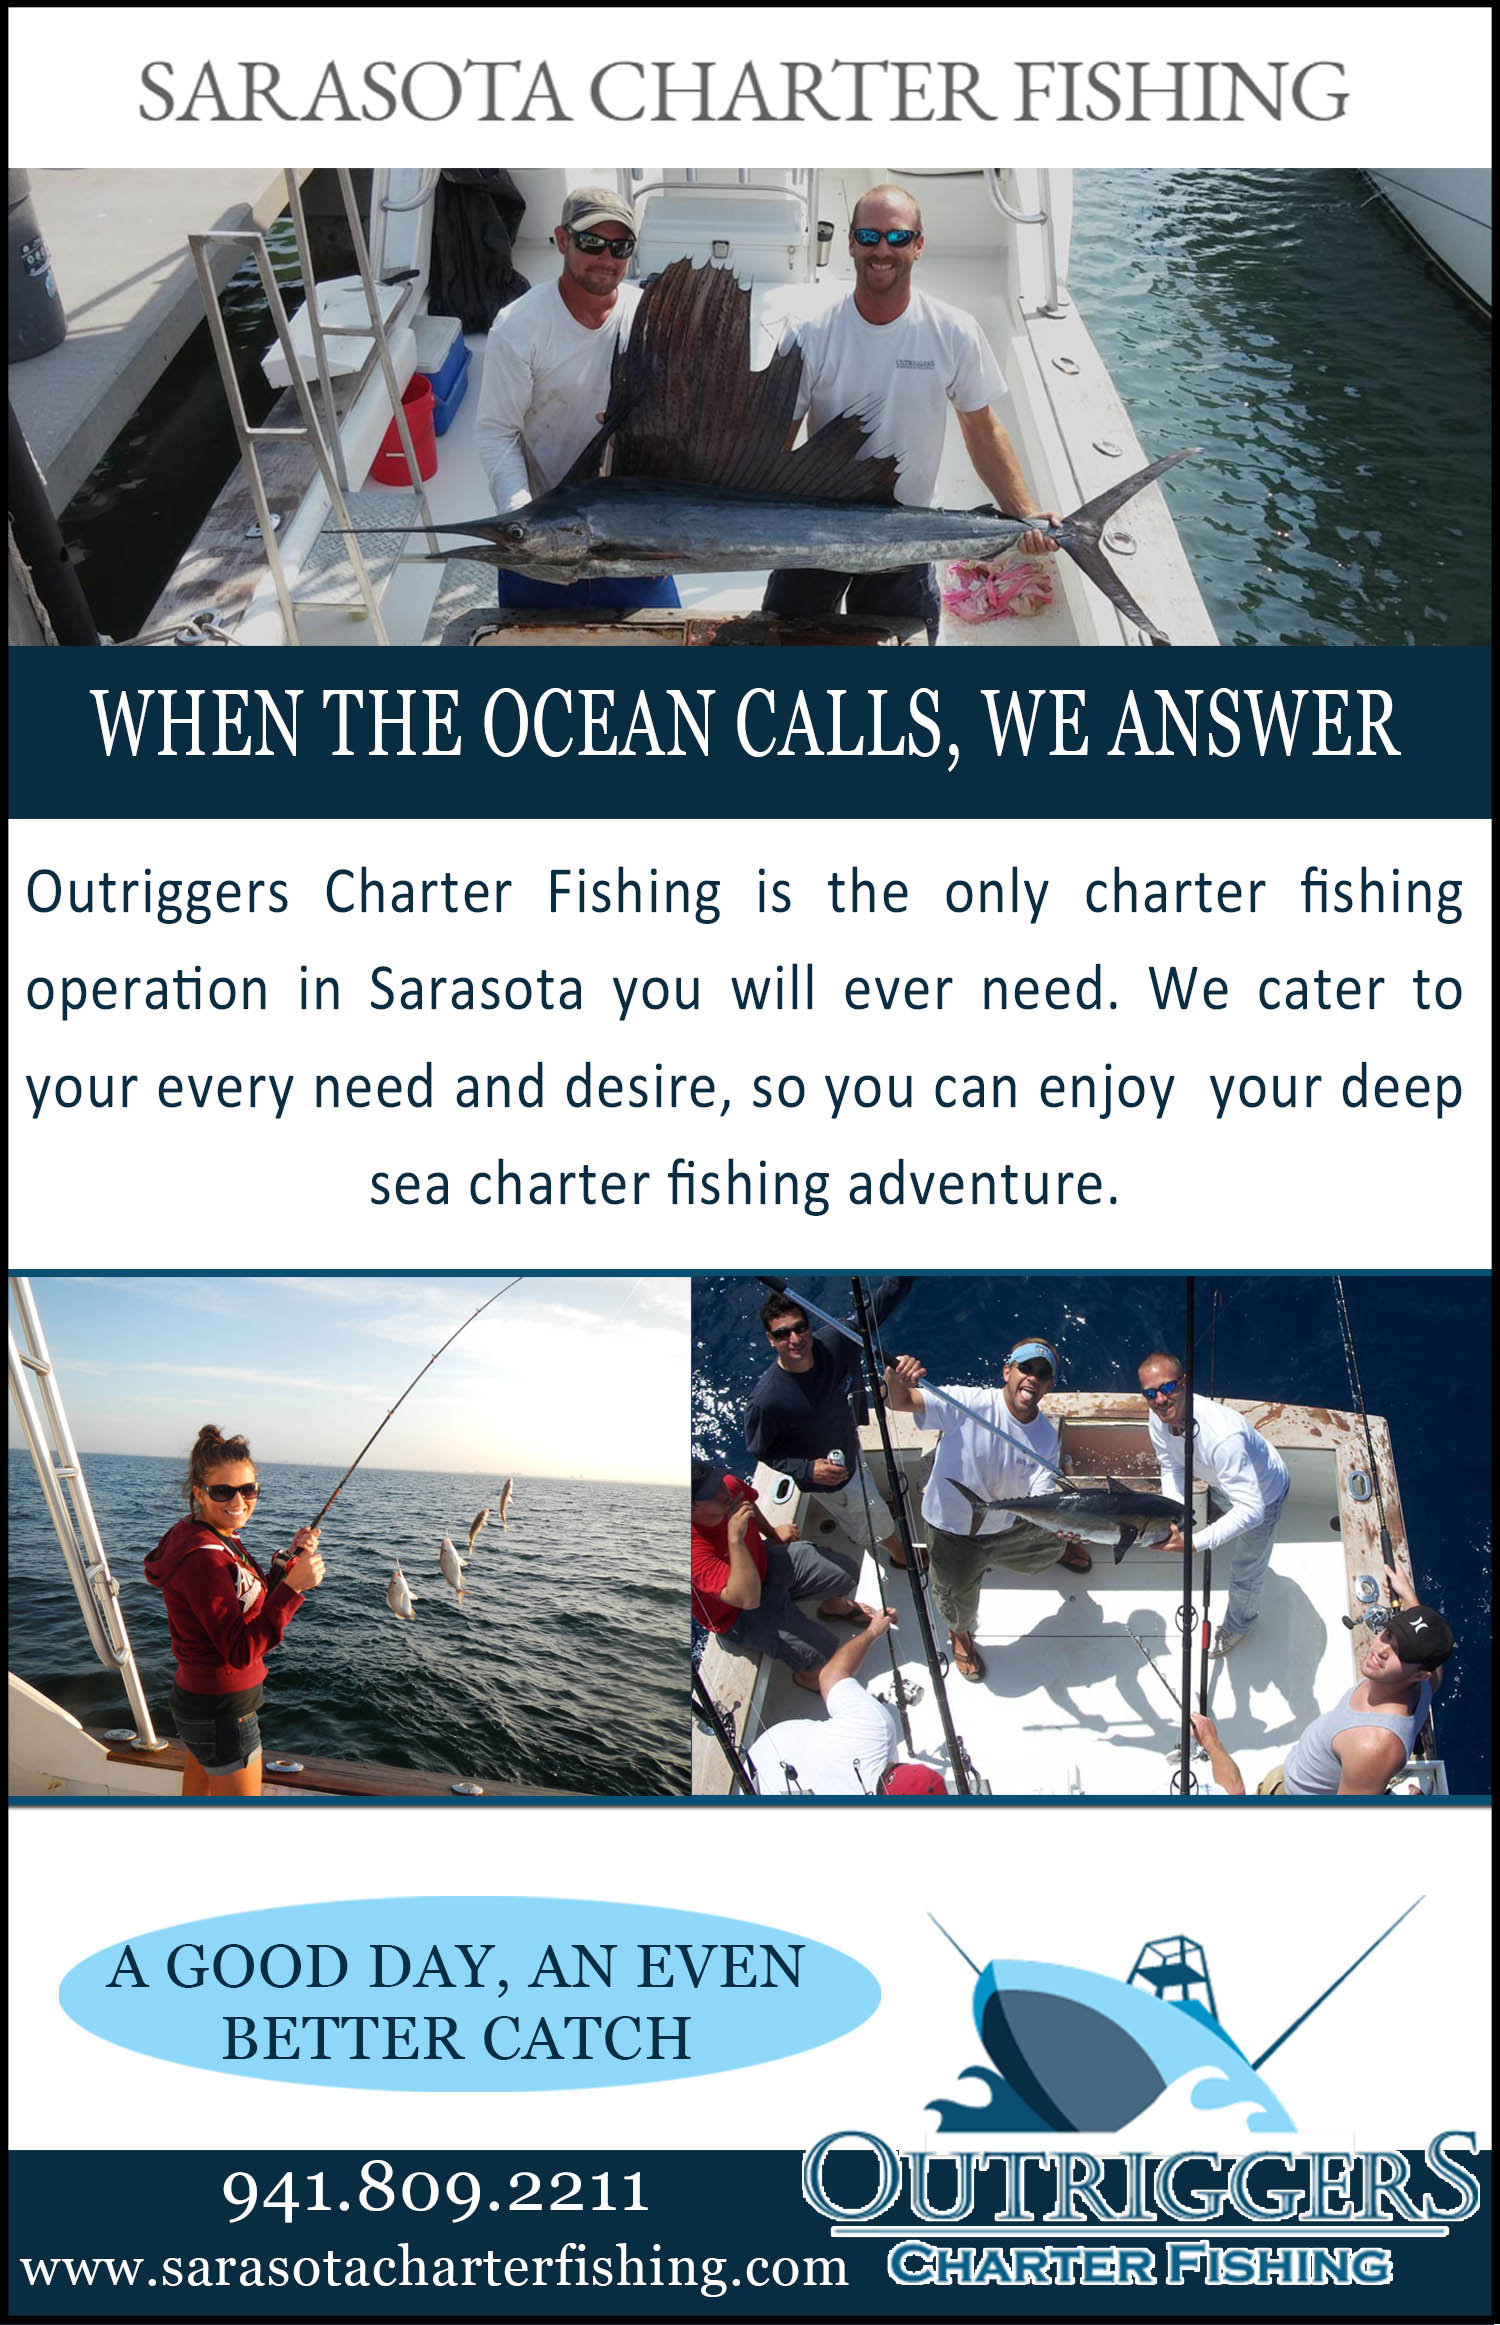 Outriggers Charter Fishing